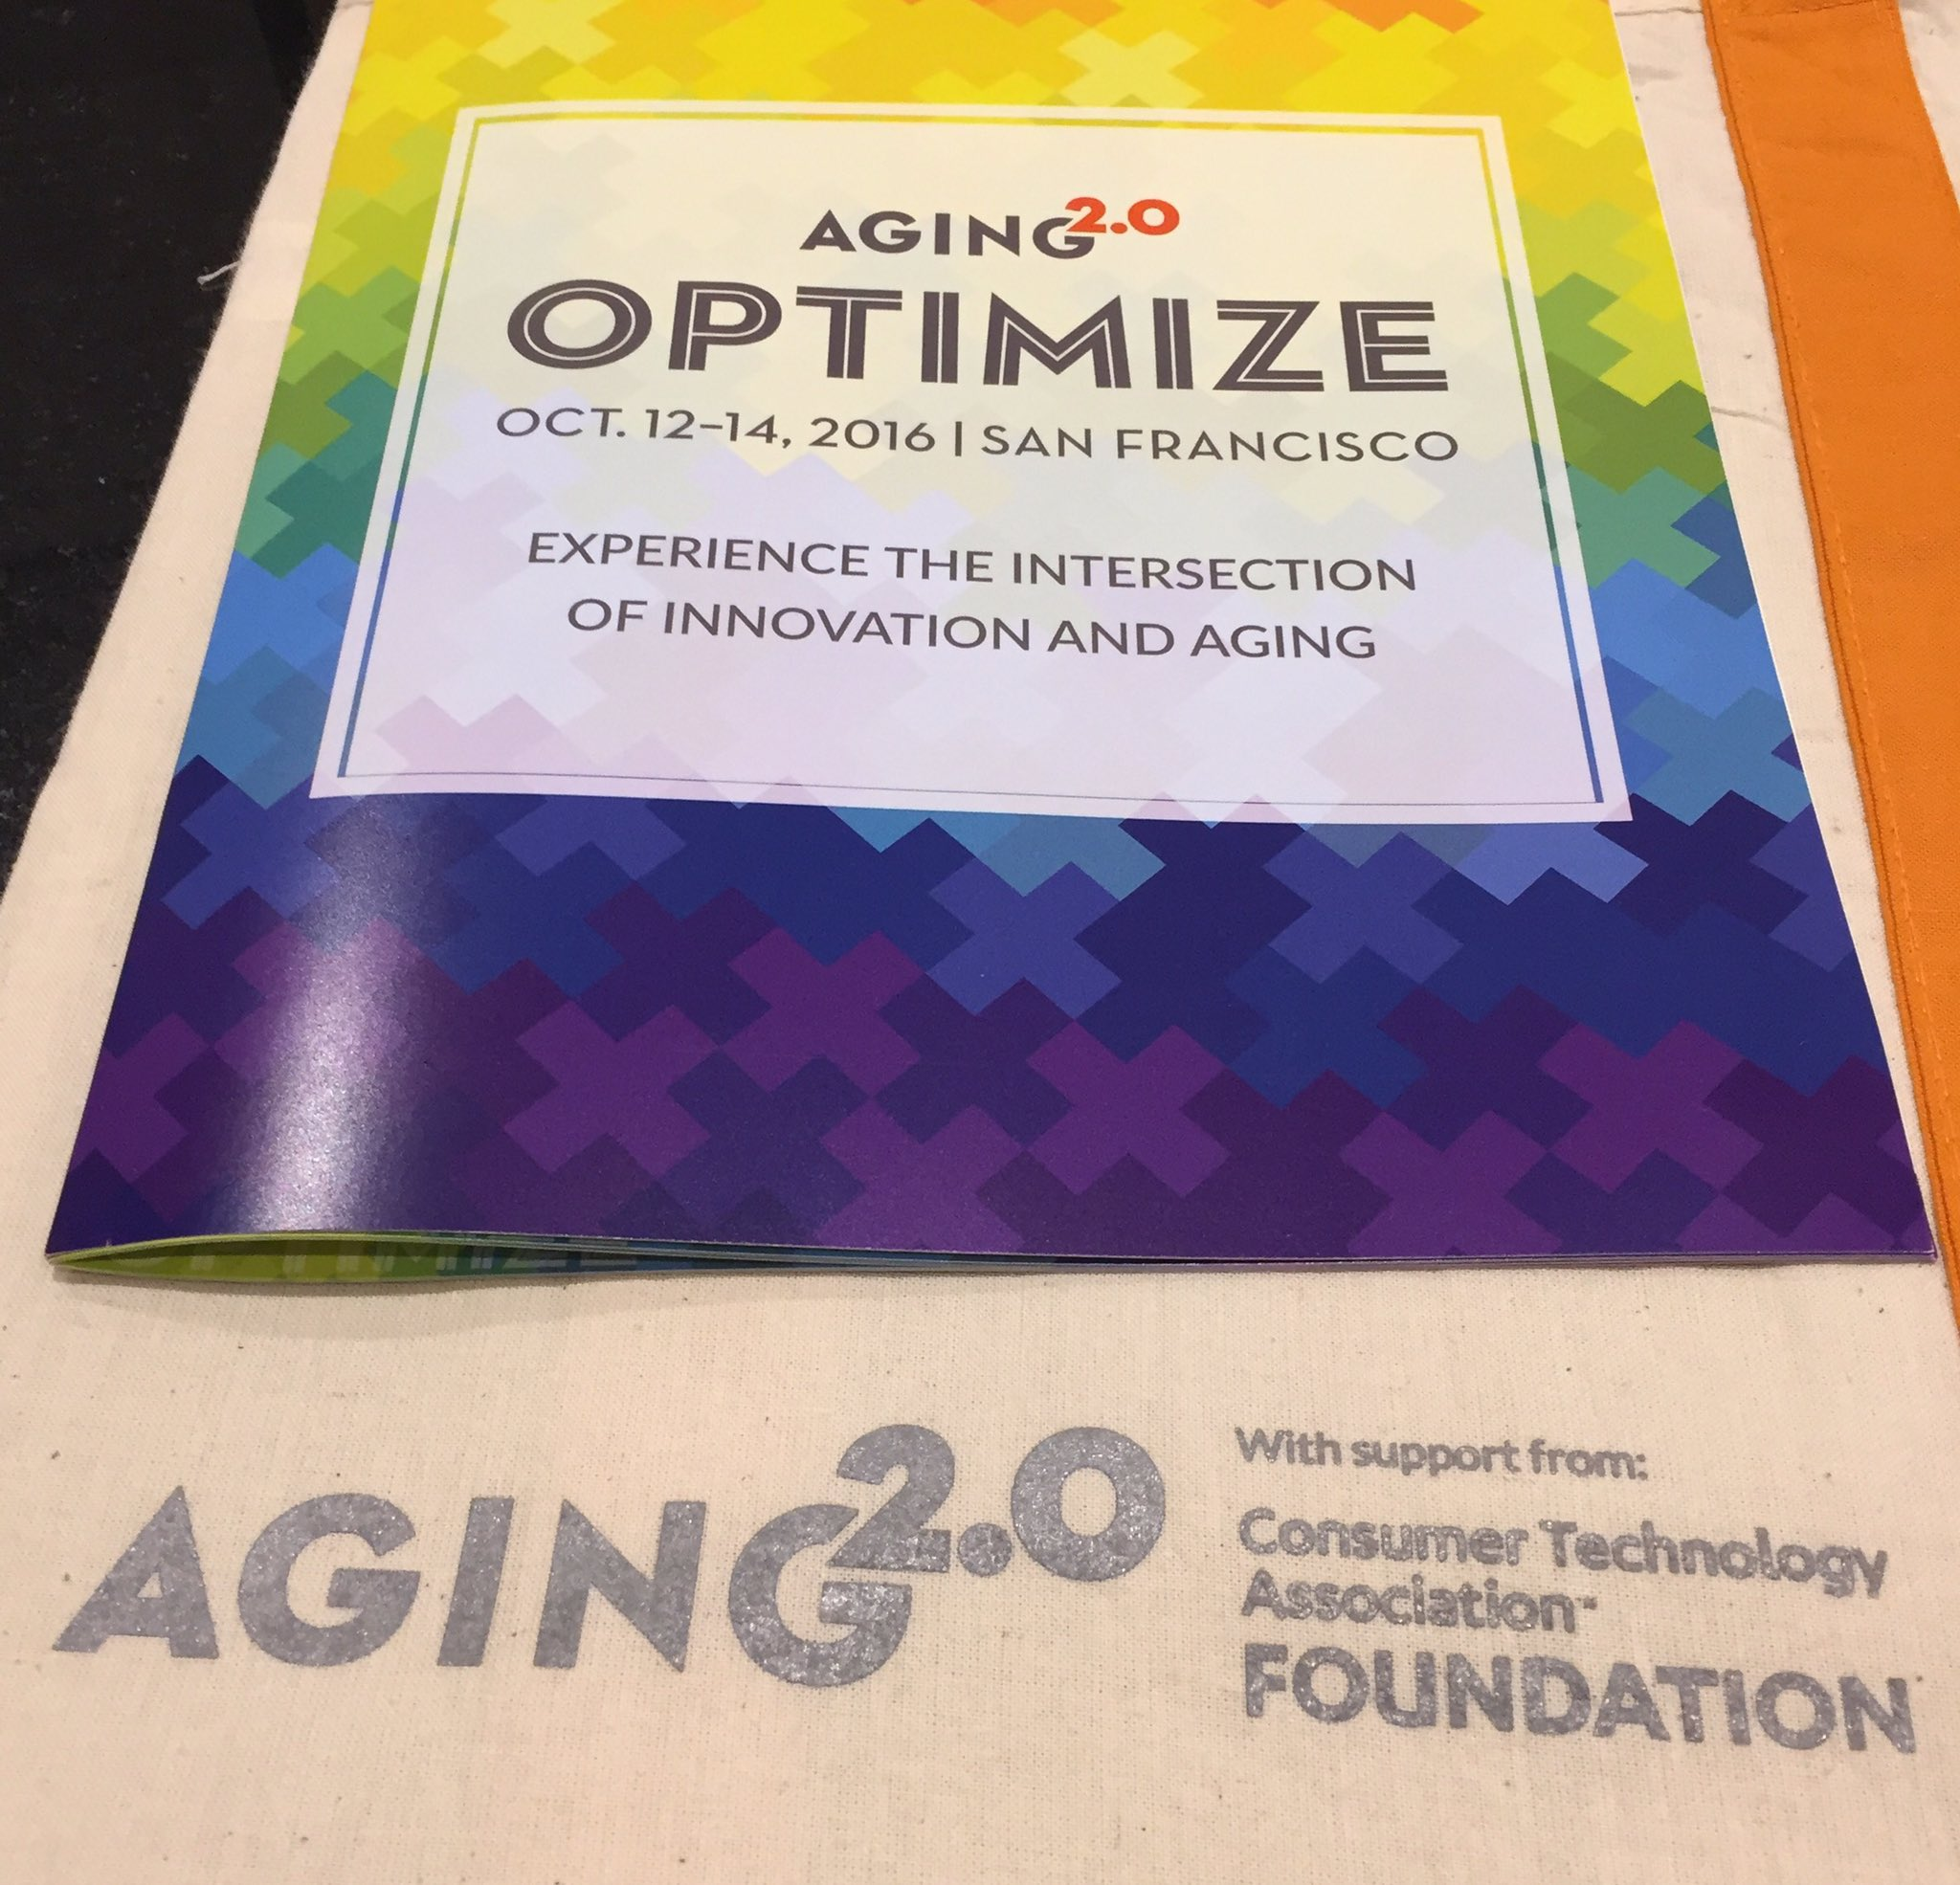 Pleased to be continuing our support of @Aging20 at #a2optimize https://t.co/RLgTYk3ufb